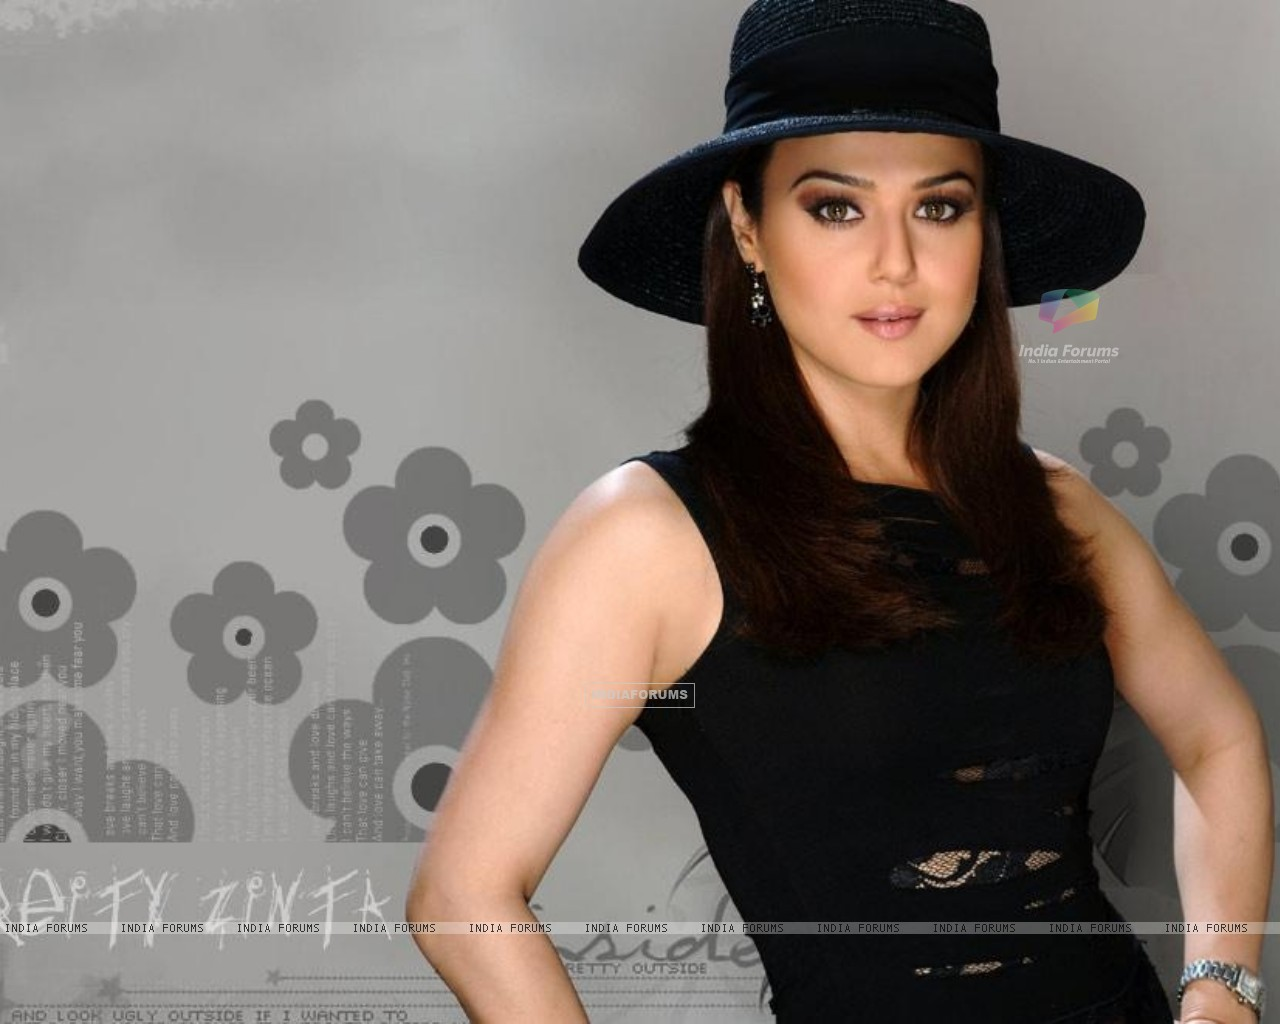 http://img.india-forums.com/wallpapers/1280x1024/18314-preity-zinta.jpg